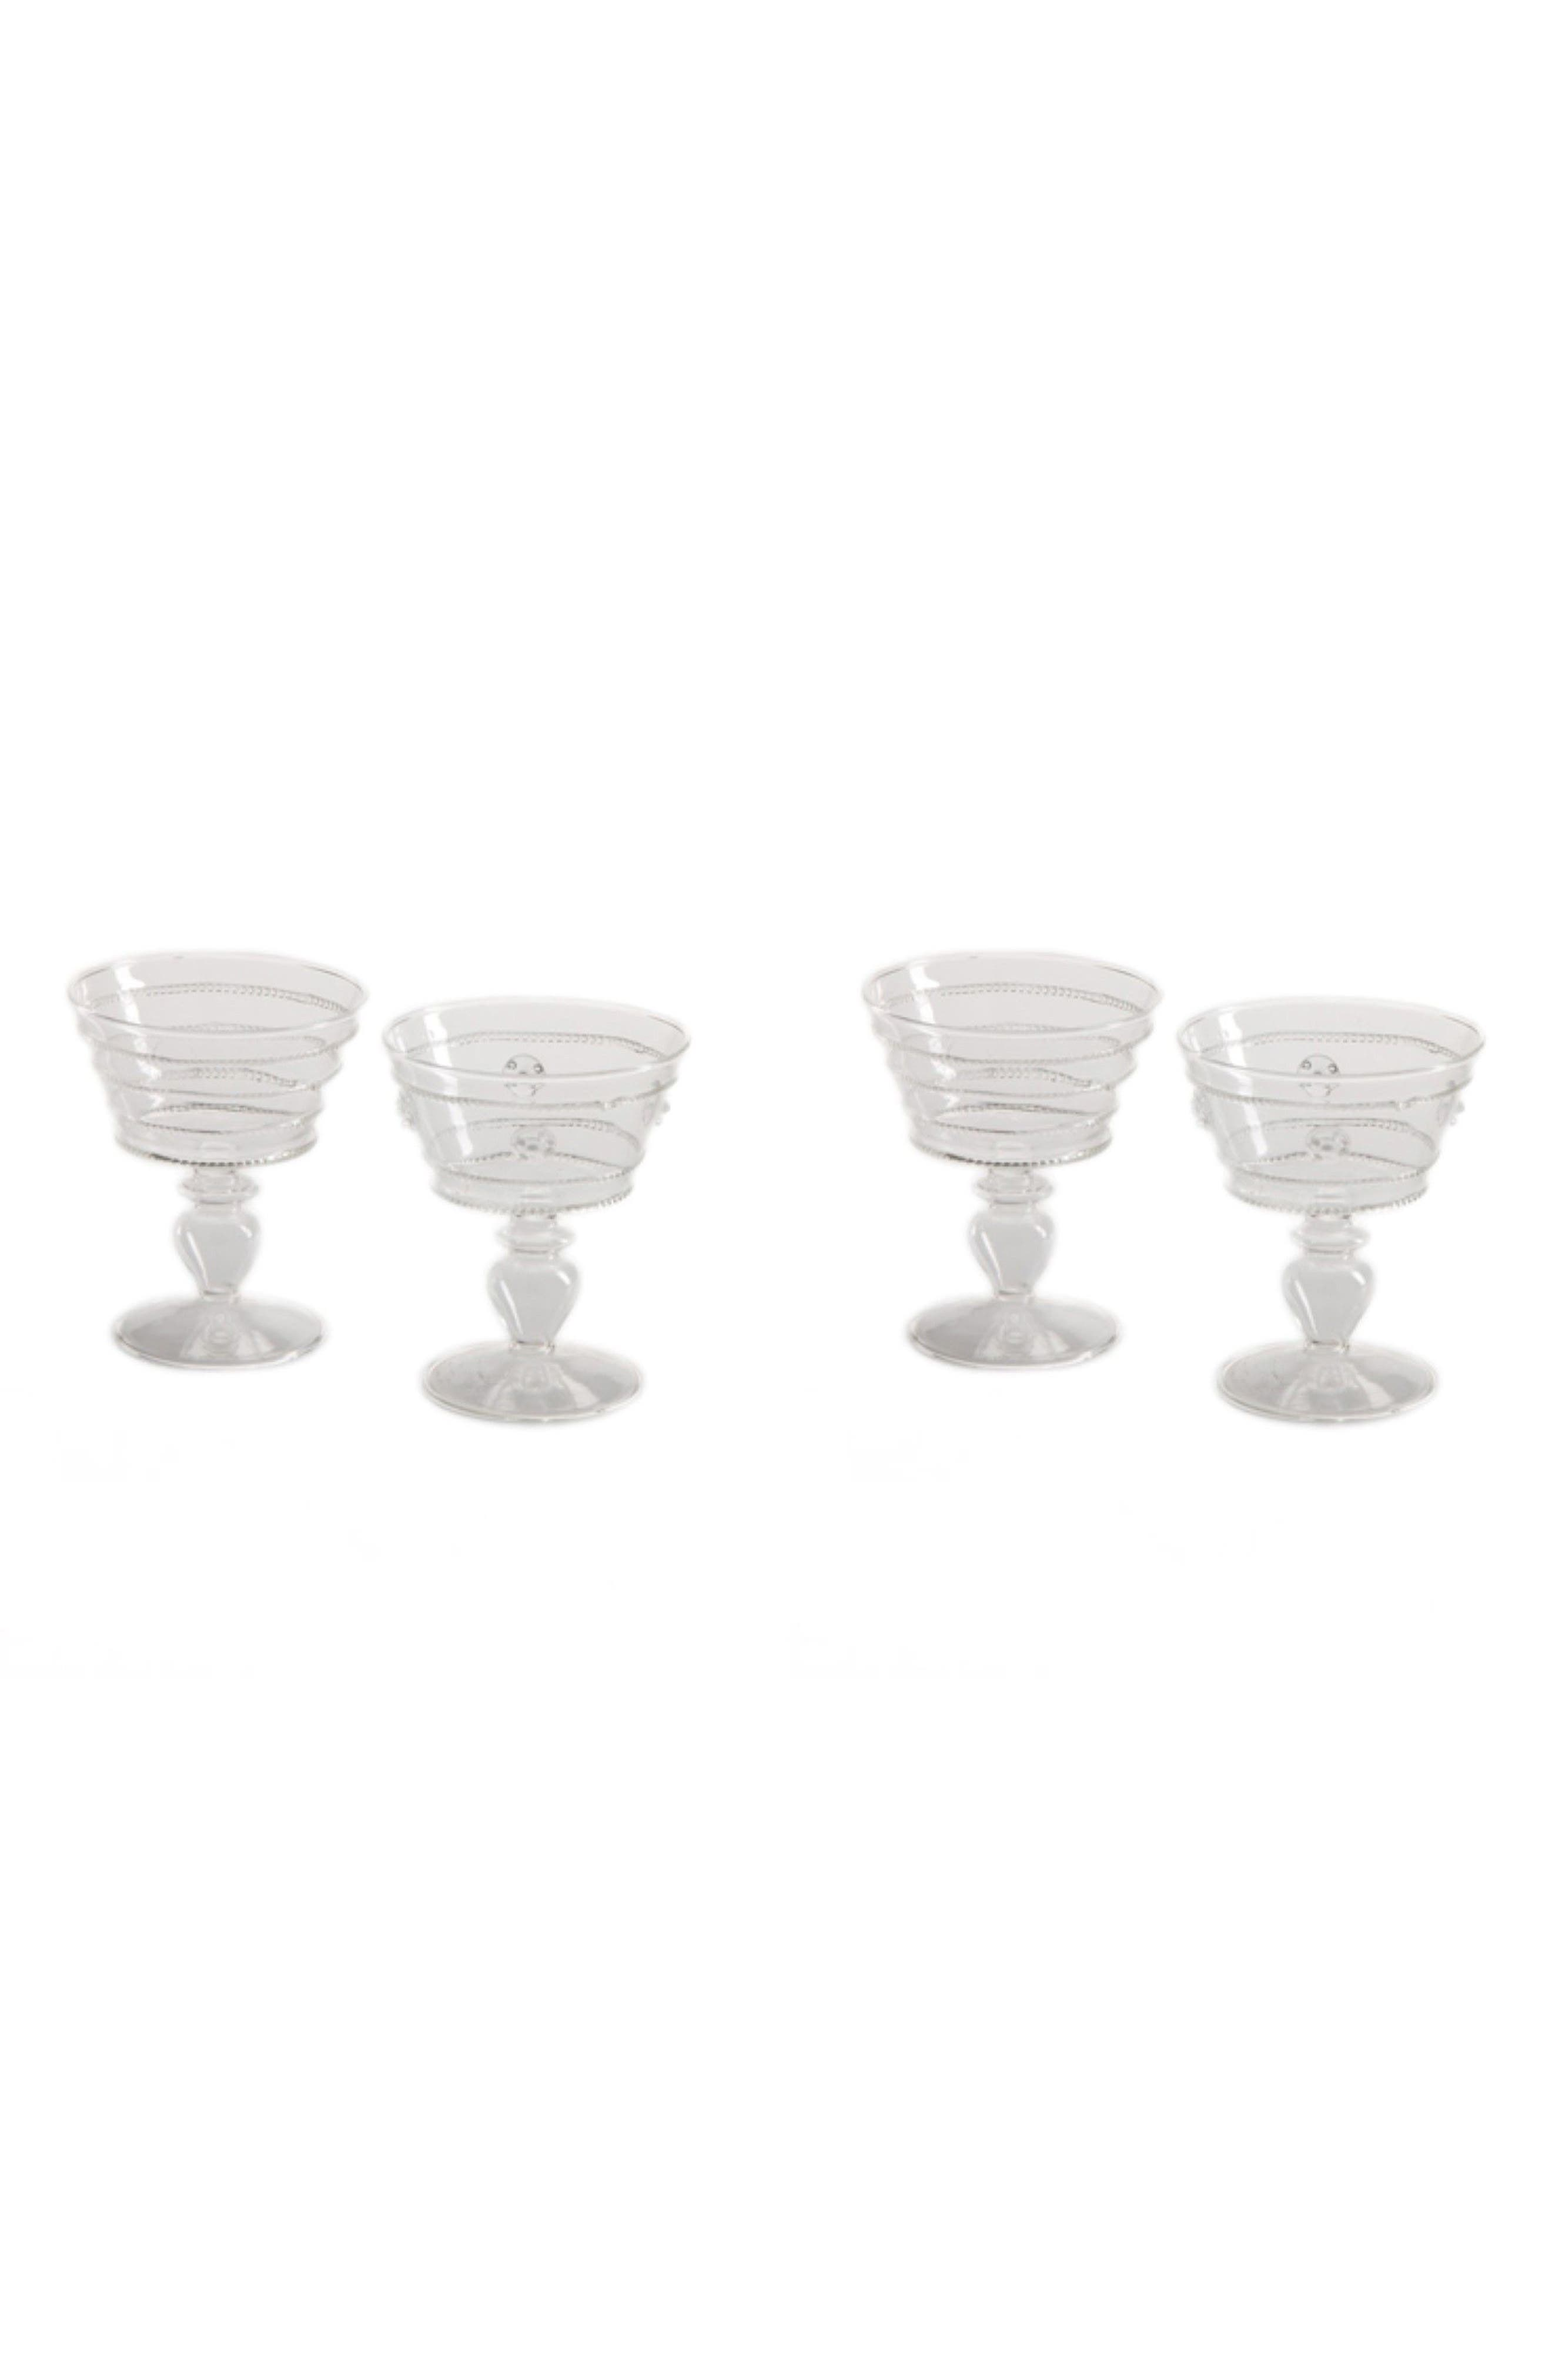 Main Image - Zodax Set of 4 Compote Bowls